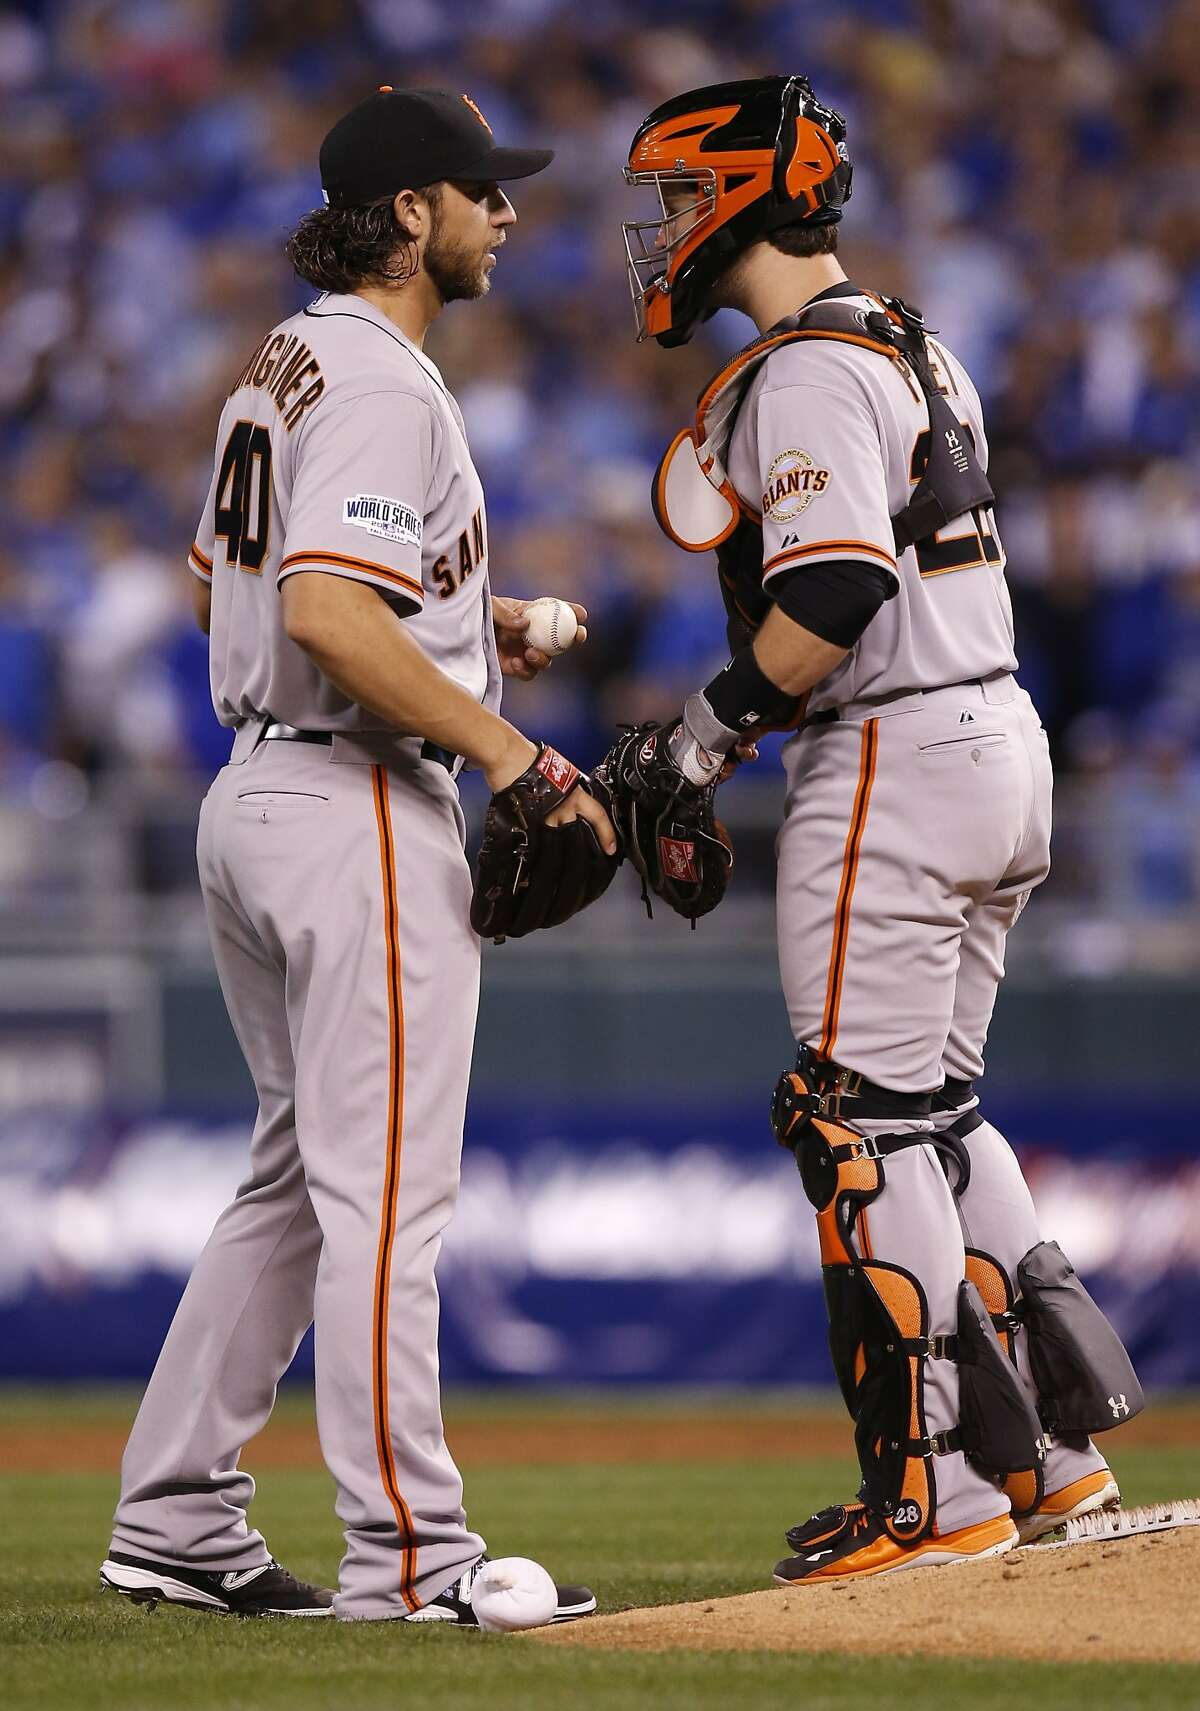 Giants Madison Bumgarner and Buster Posey talk during the second inning in Game 1 of the World Series at Kauffman Stadium on Tuesday, Oct. 21, 2014 in Kansas City, Mo.